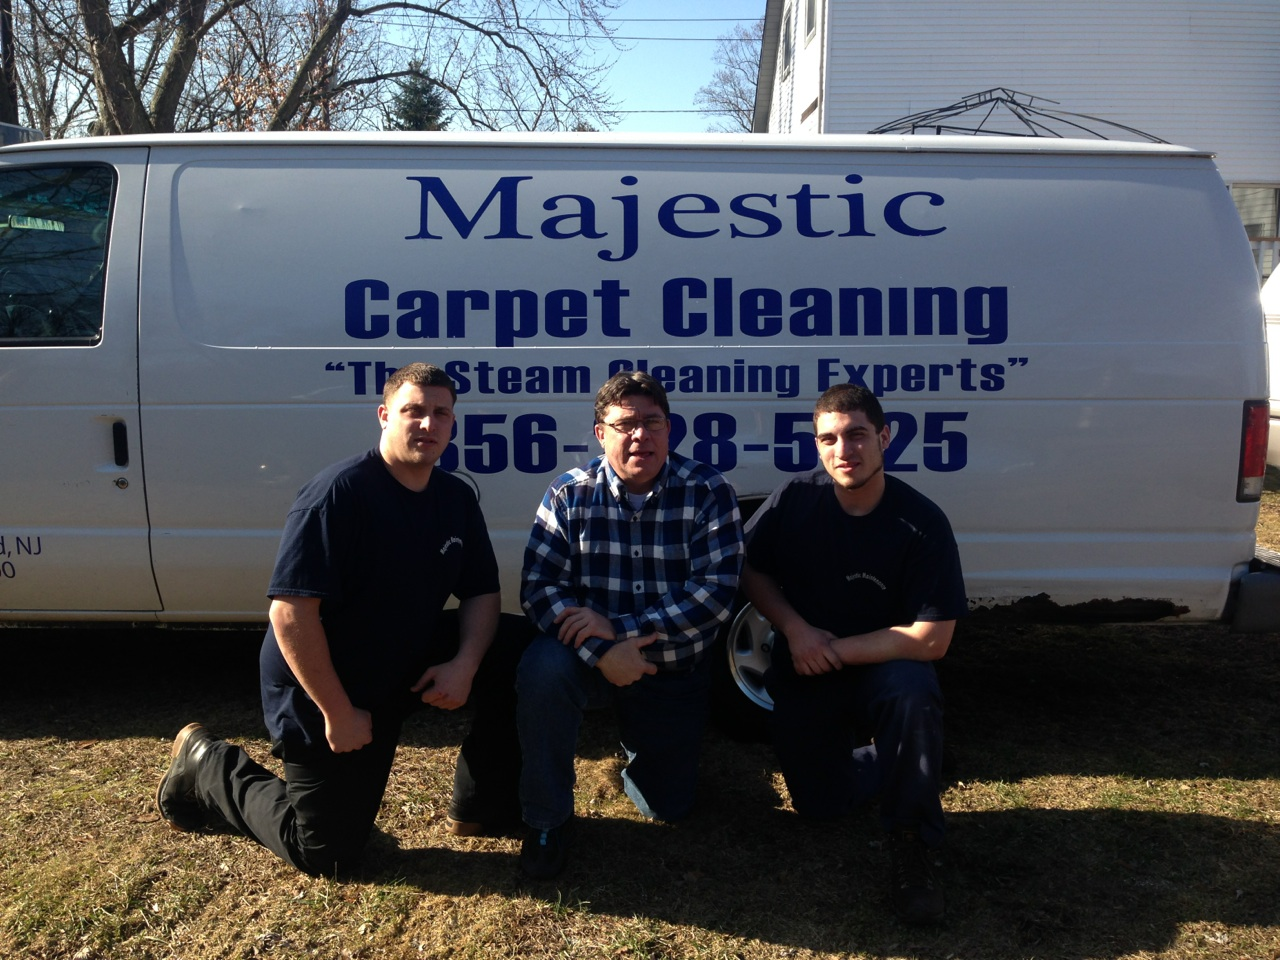 Reliable Carpet Cleaning in Cherry Hill, NJ